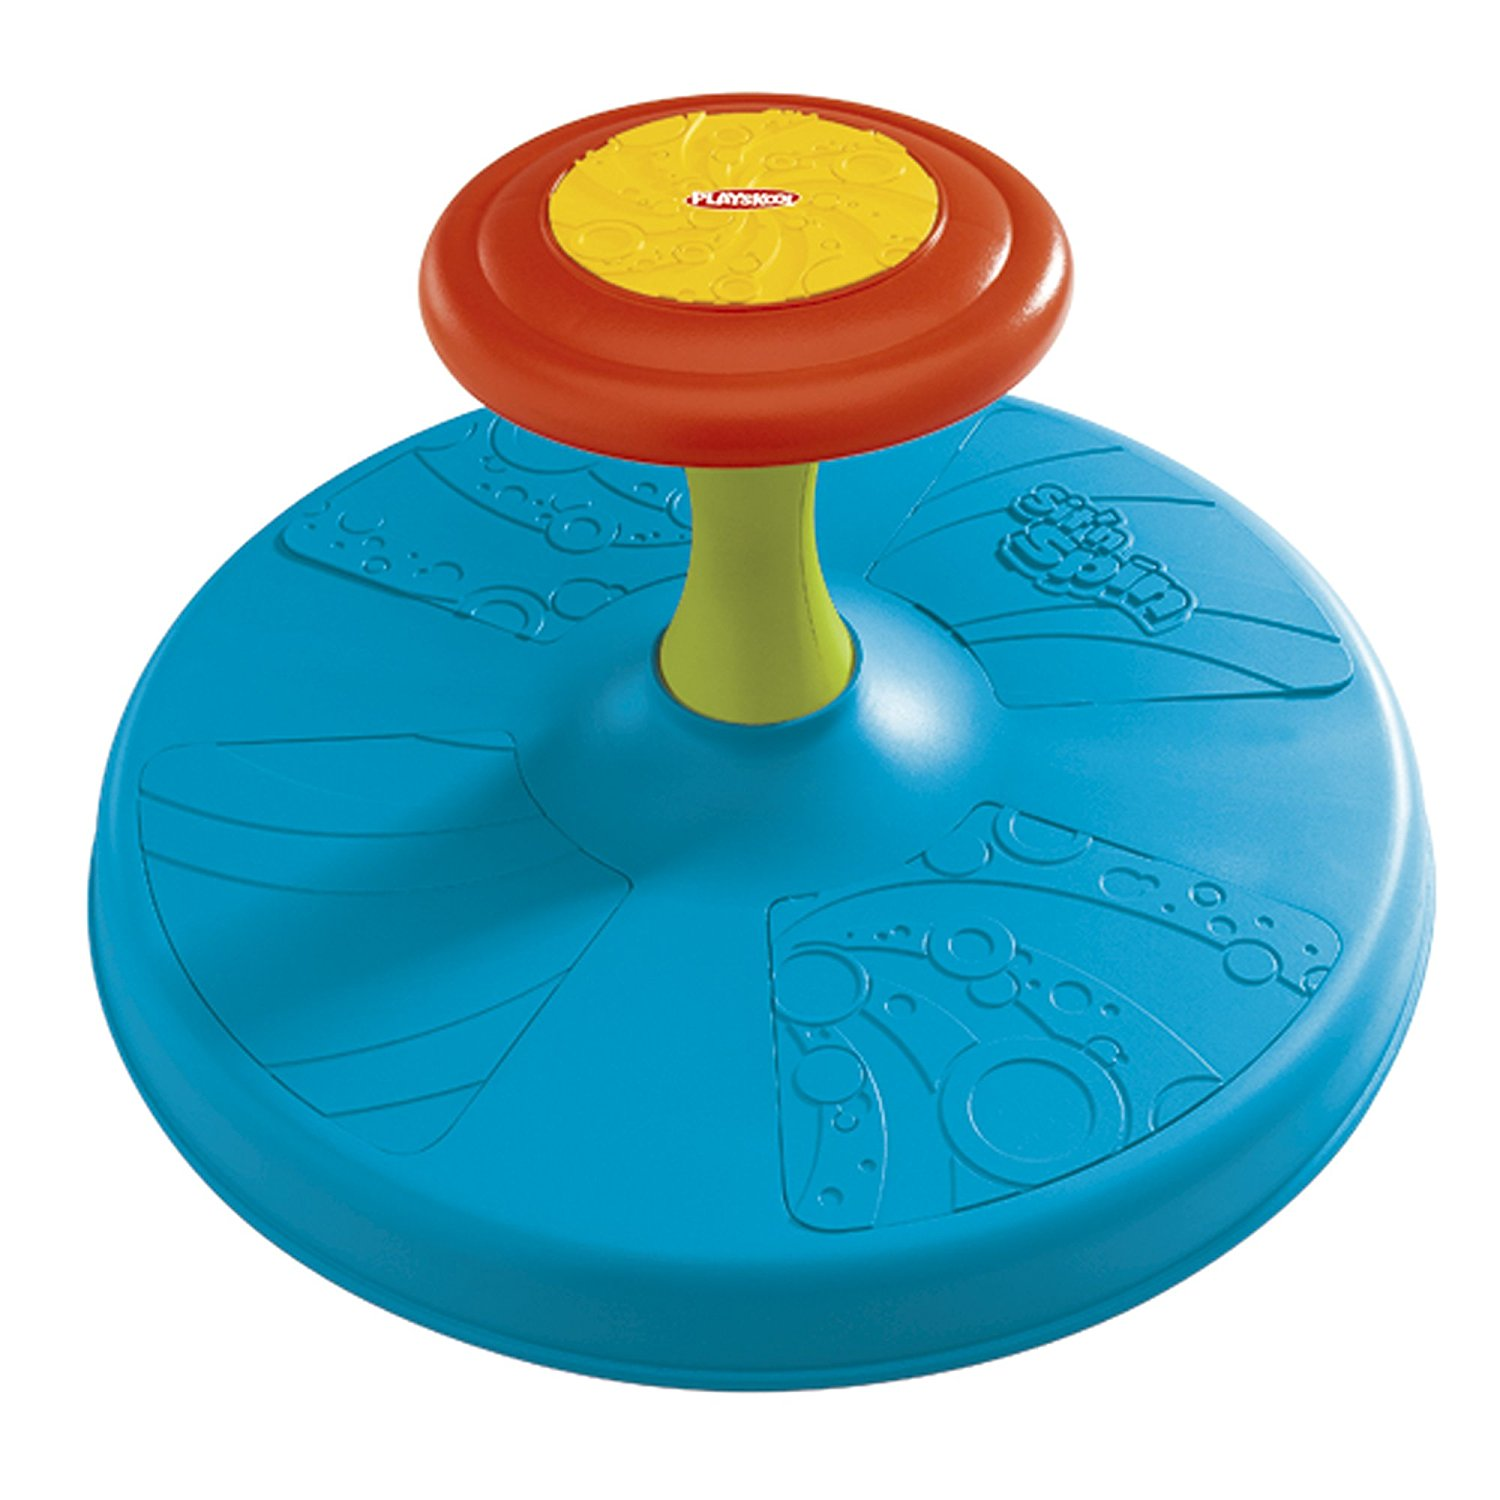 Play Favorites Sit 'n Spin Toy..., By Playskool Ship from US